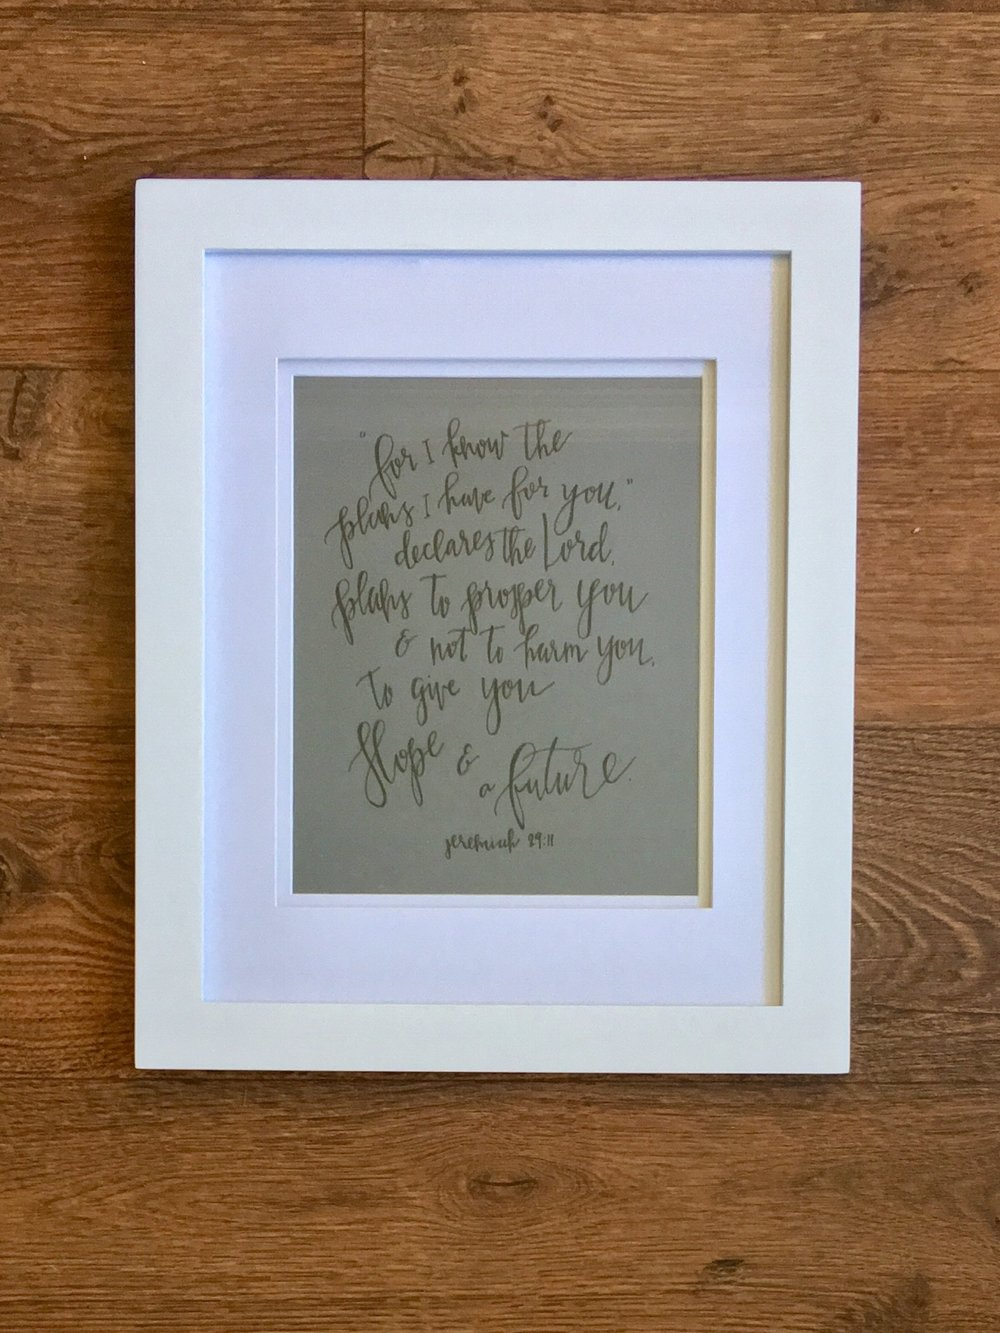 One of my dearest friends sent me this framed hand-lettered verse after Kurt and I experienced loss at the end of March.